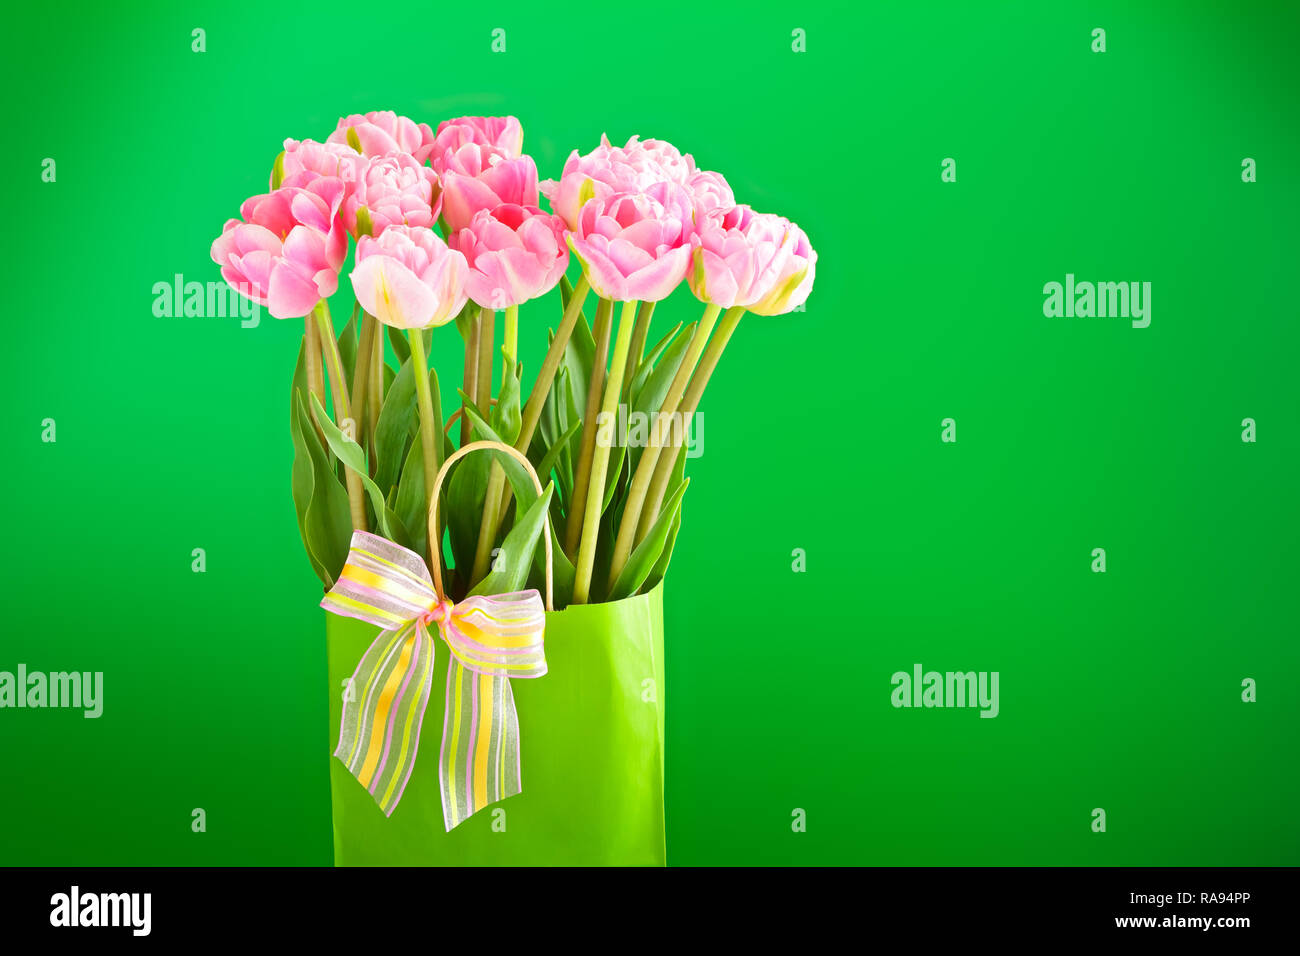 Flower bouquet of pink tulips in a vase with a multicolored bow tie on a bright green background, copy or text space Stock Photo